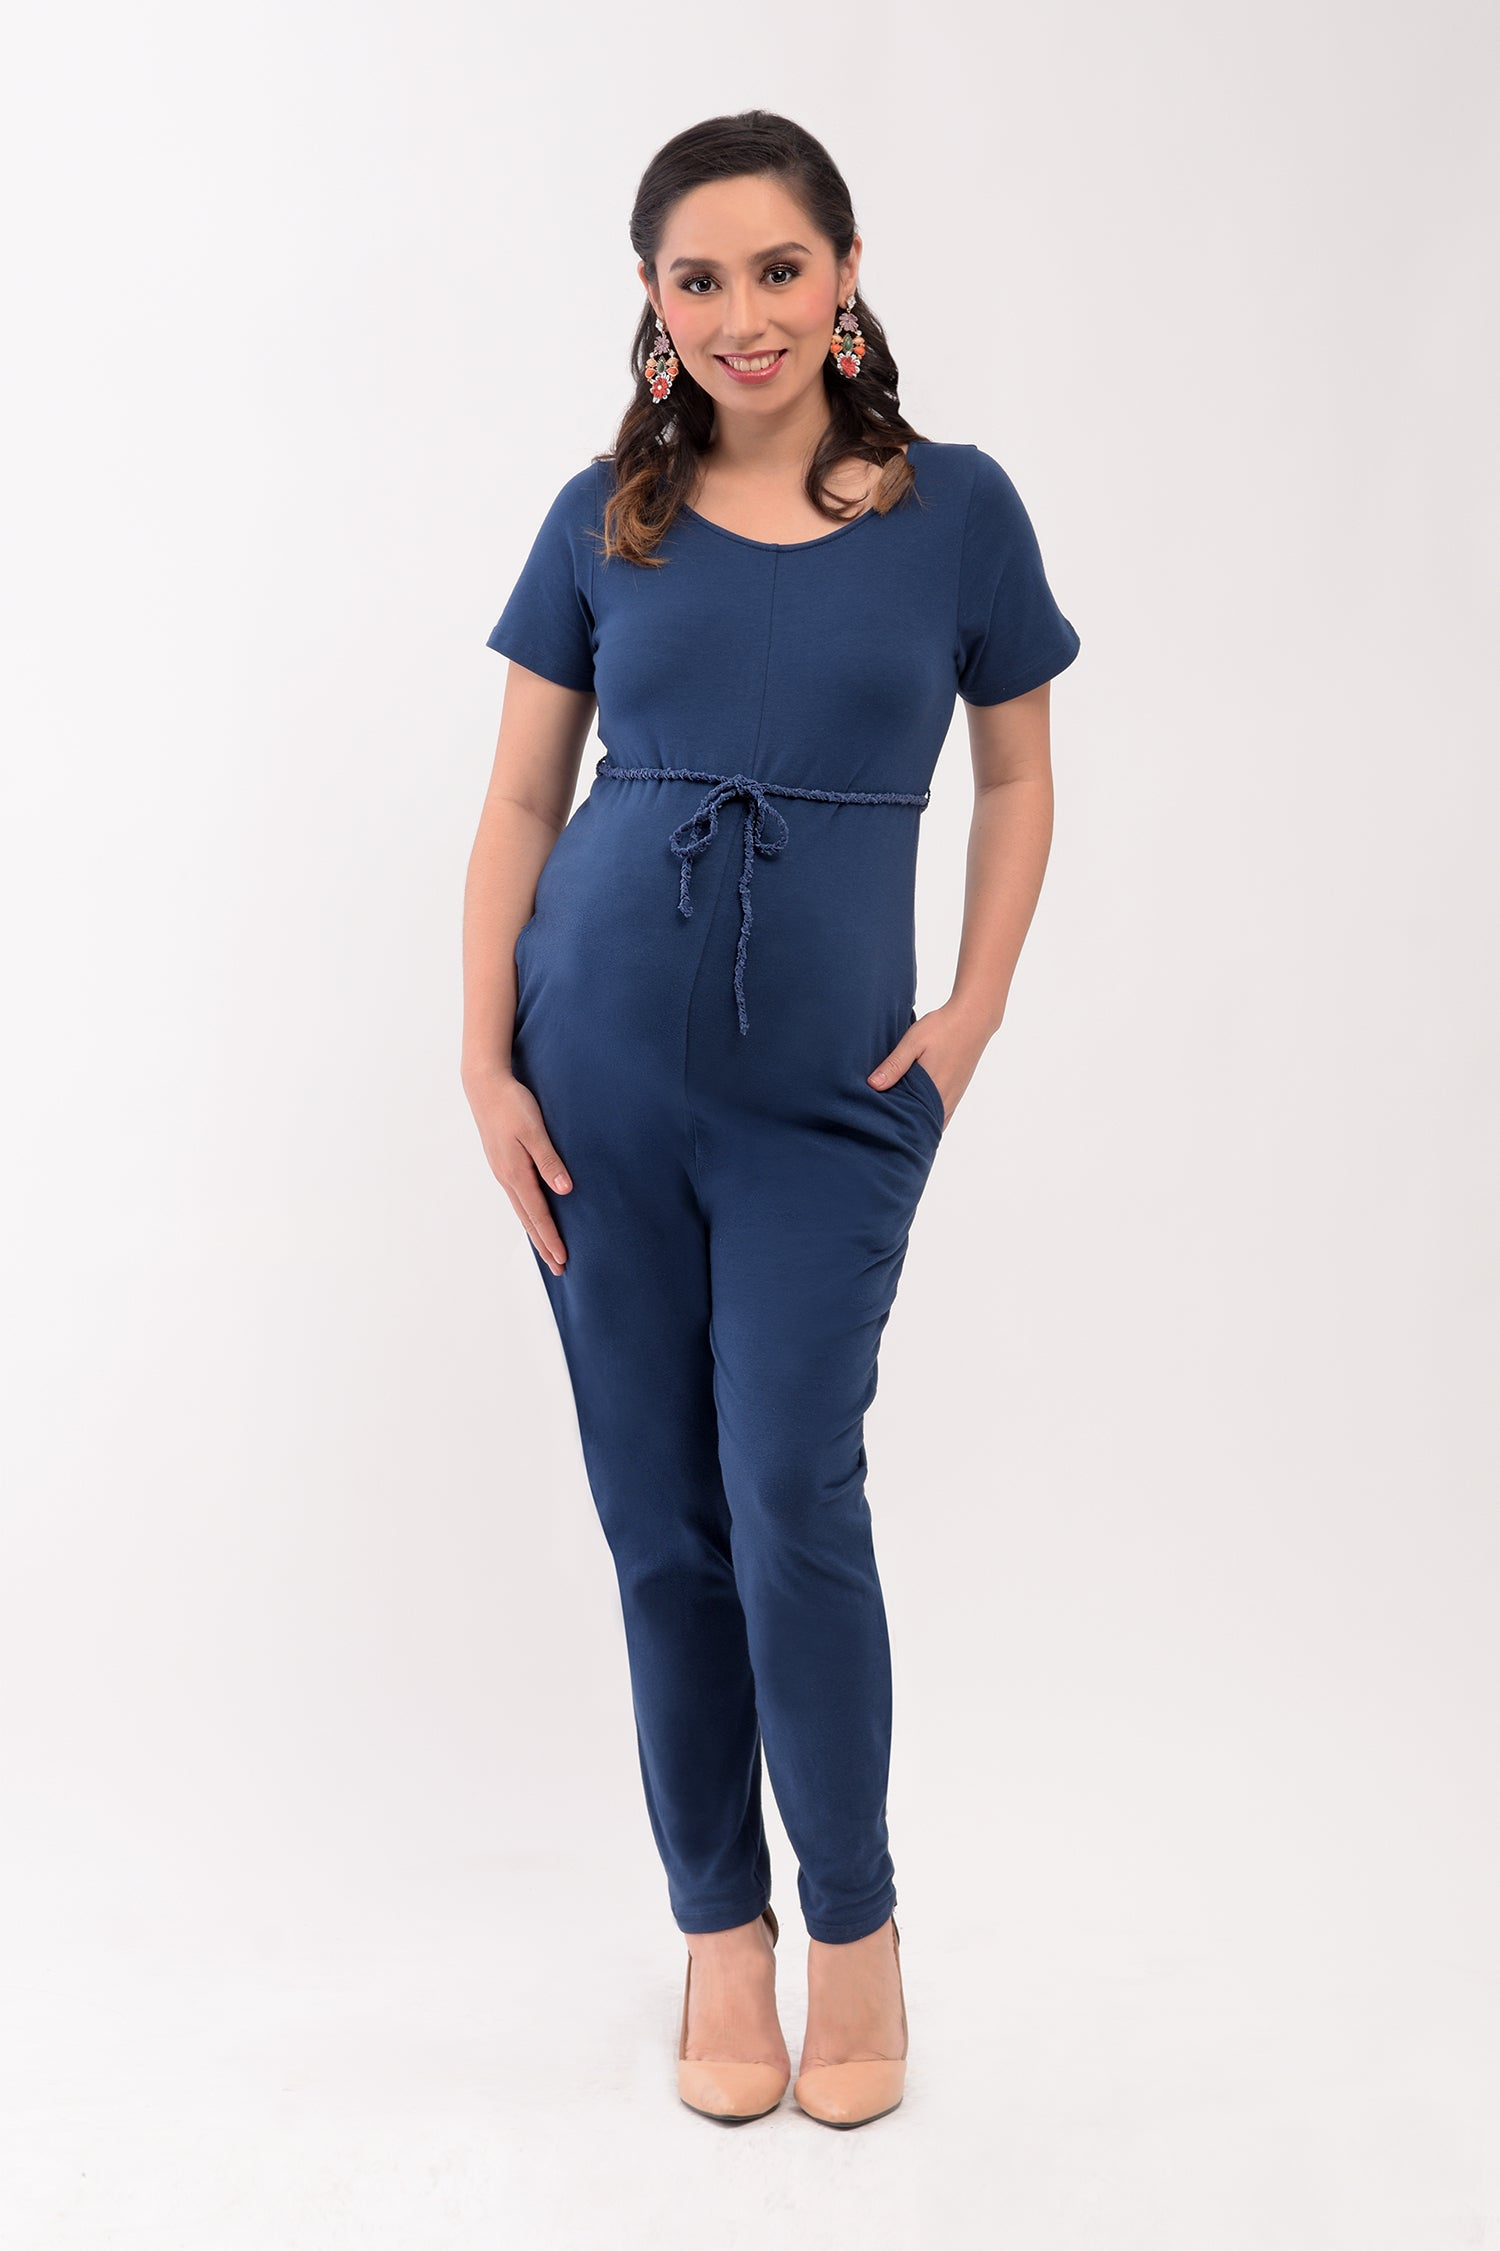 845e769dfc Knit Jersey Maternity Jumpsuit - Navy Blue (RMP 004) – Great Expectations  Maternity PH